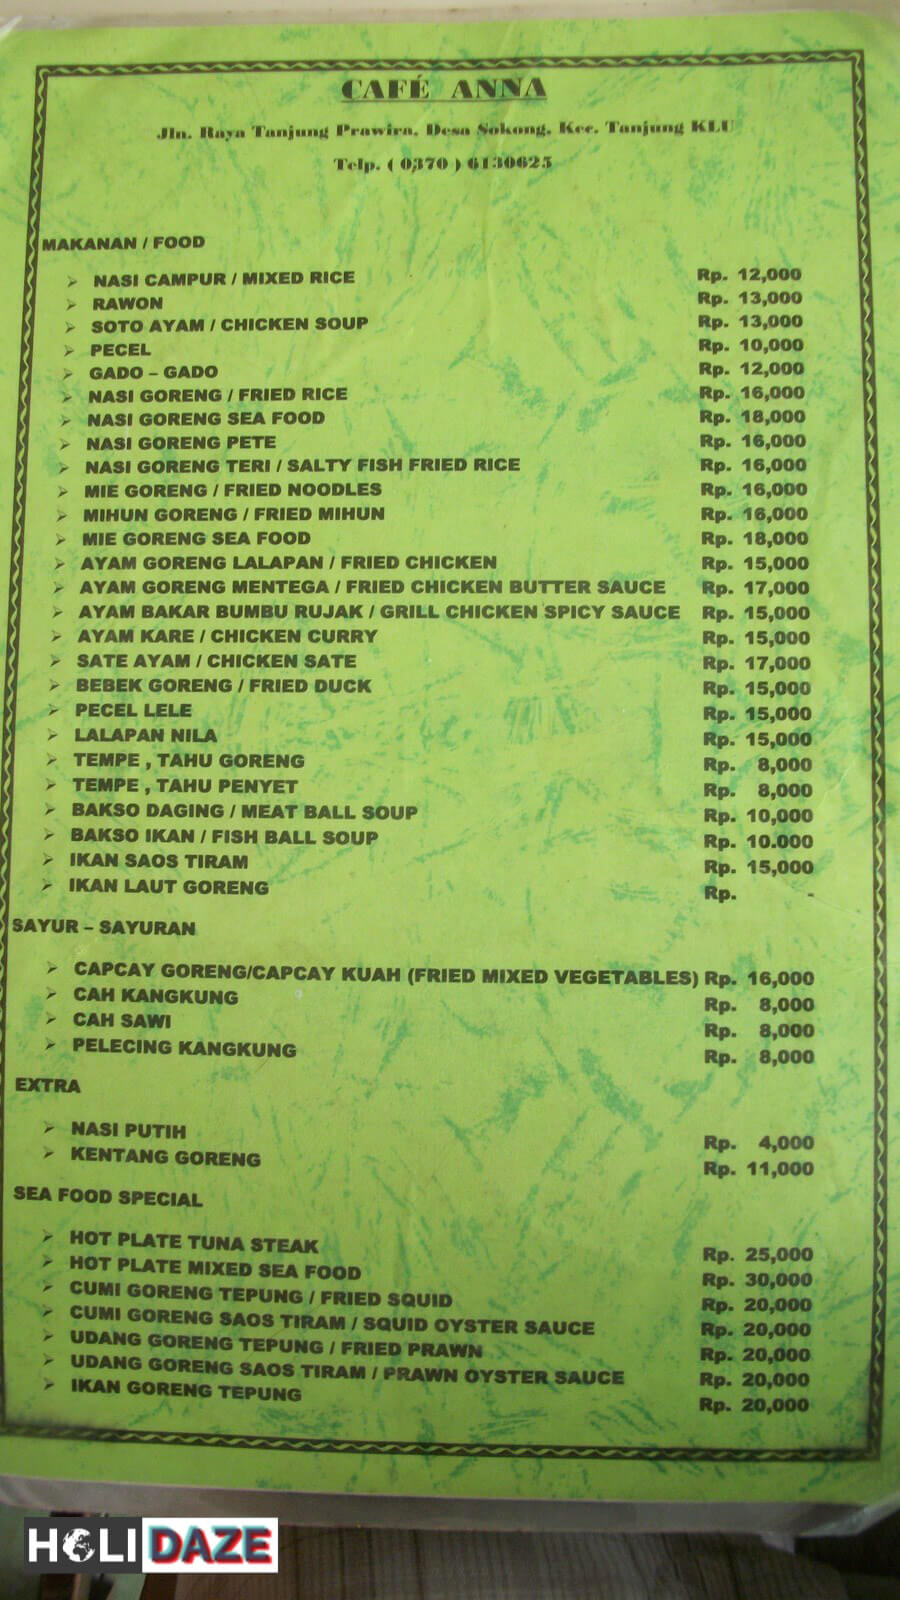 Indonesian food menu with prices